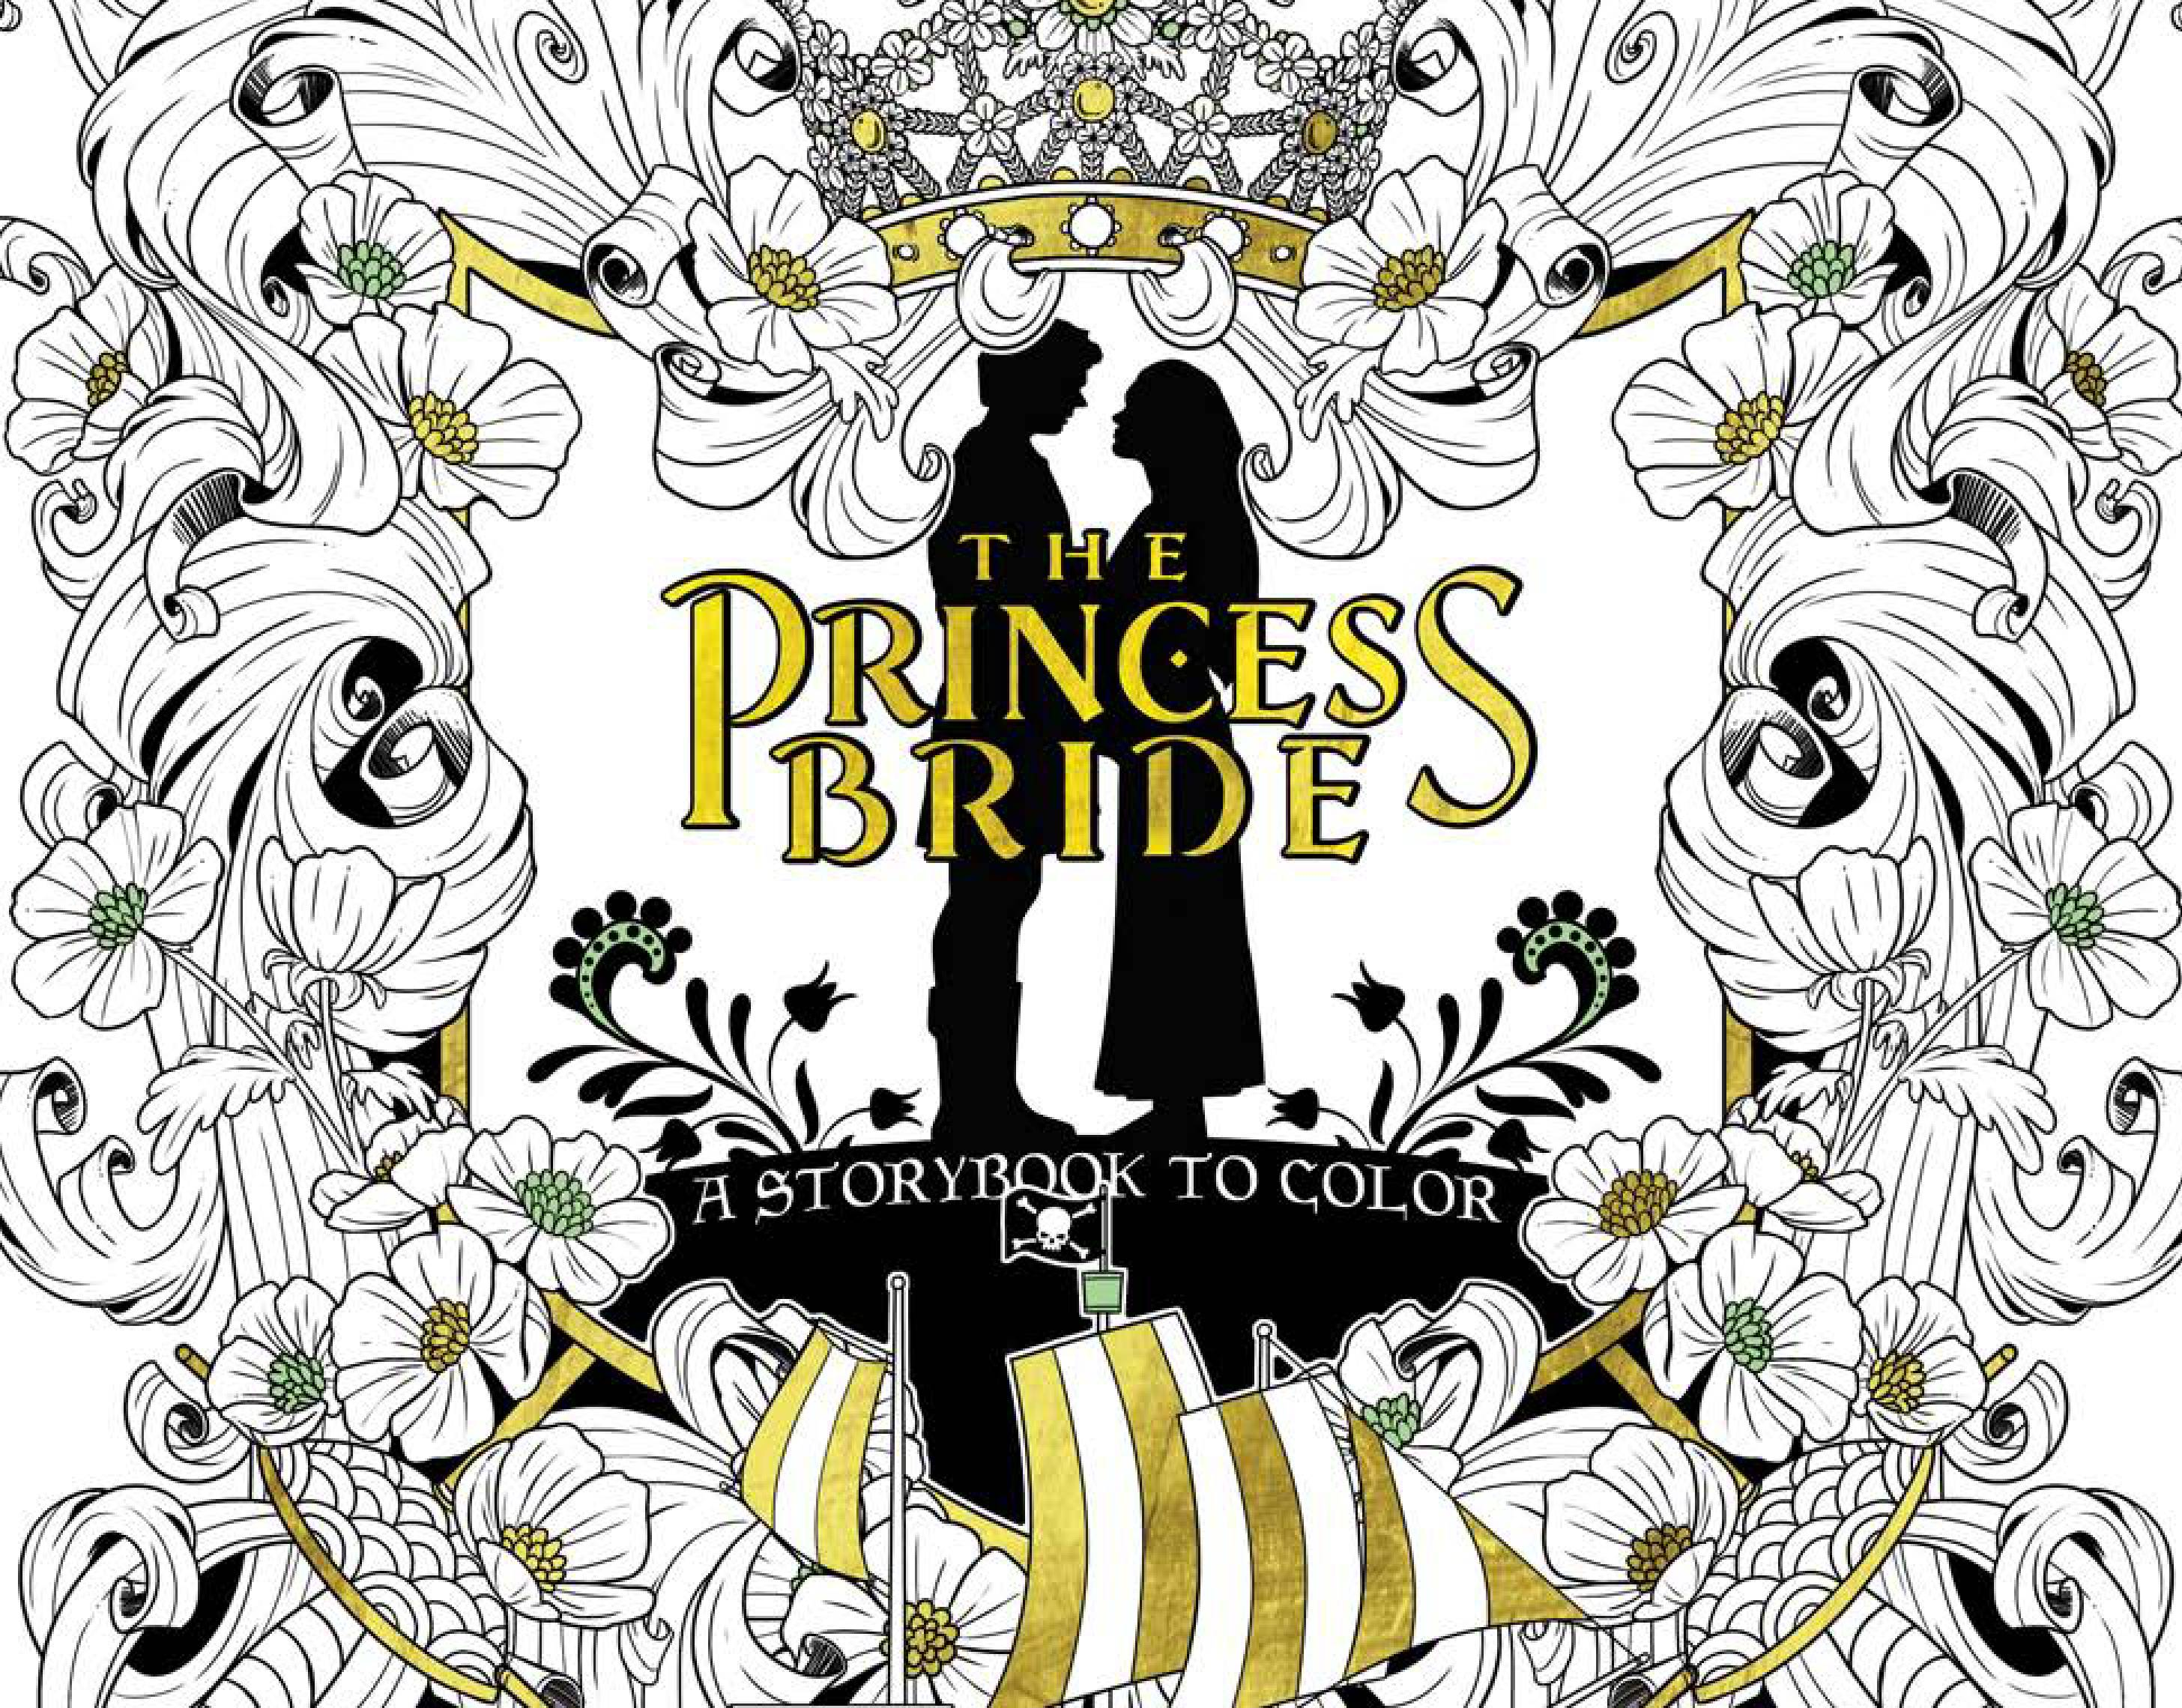 The Princess Bride tendrá un libro para colorear - ModoGeeks